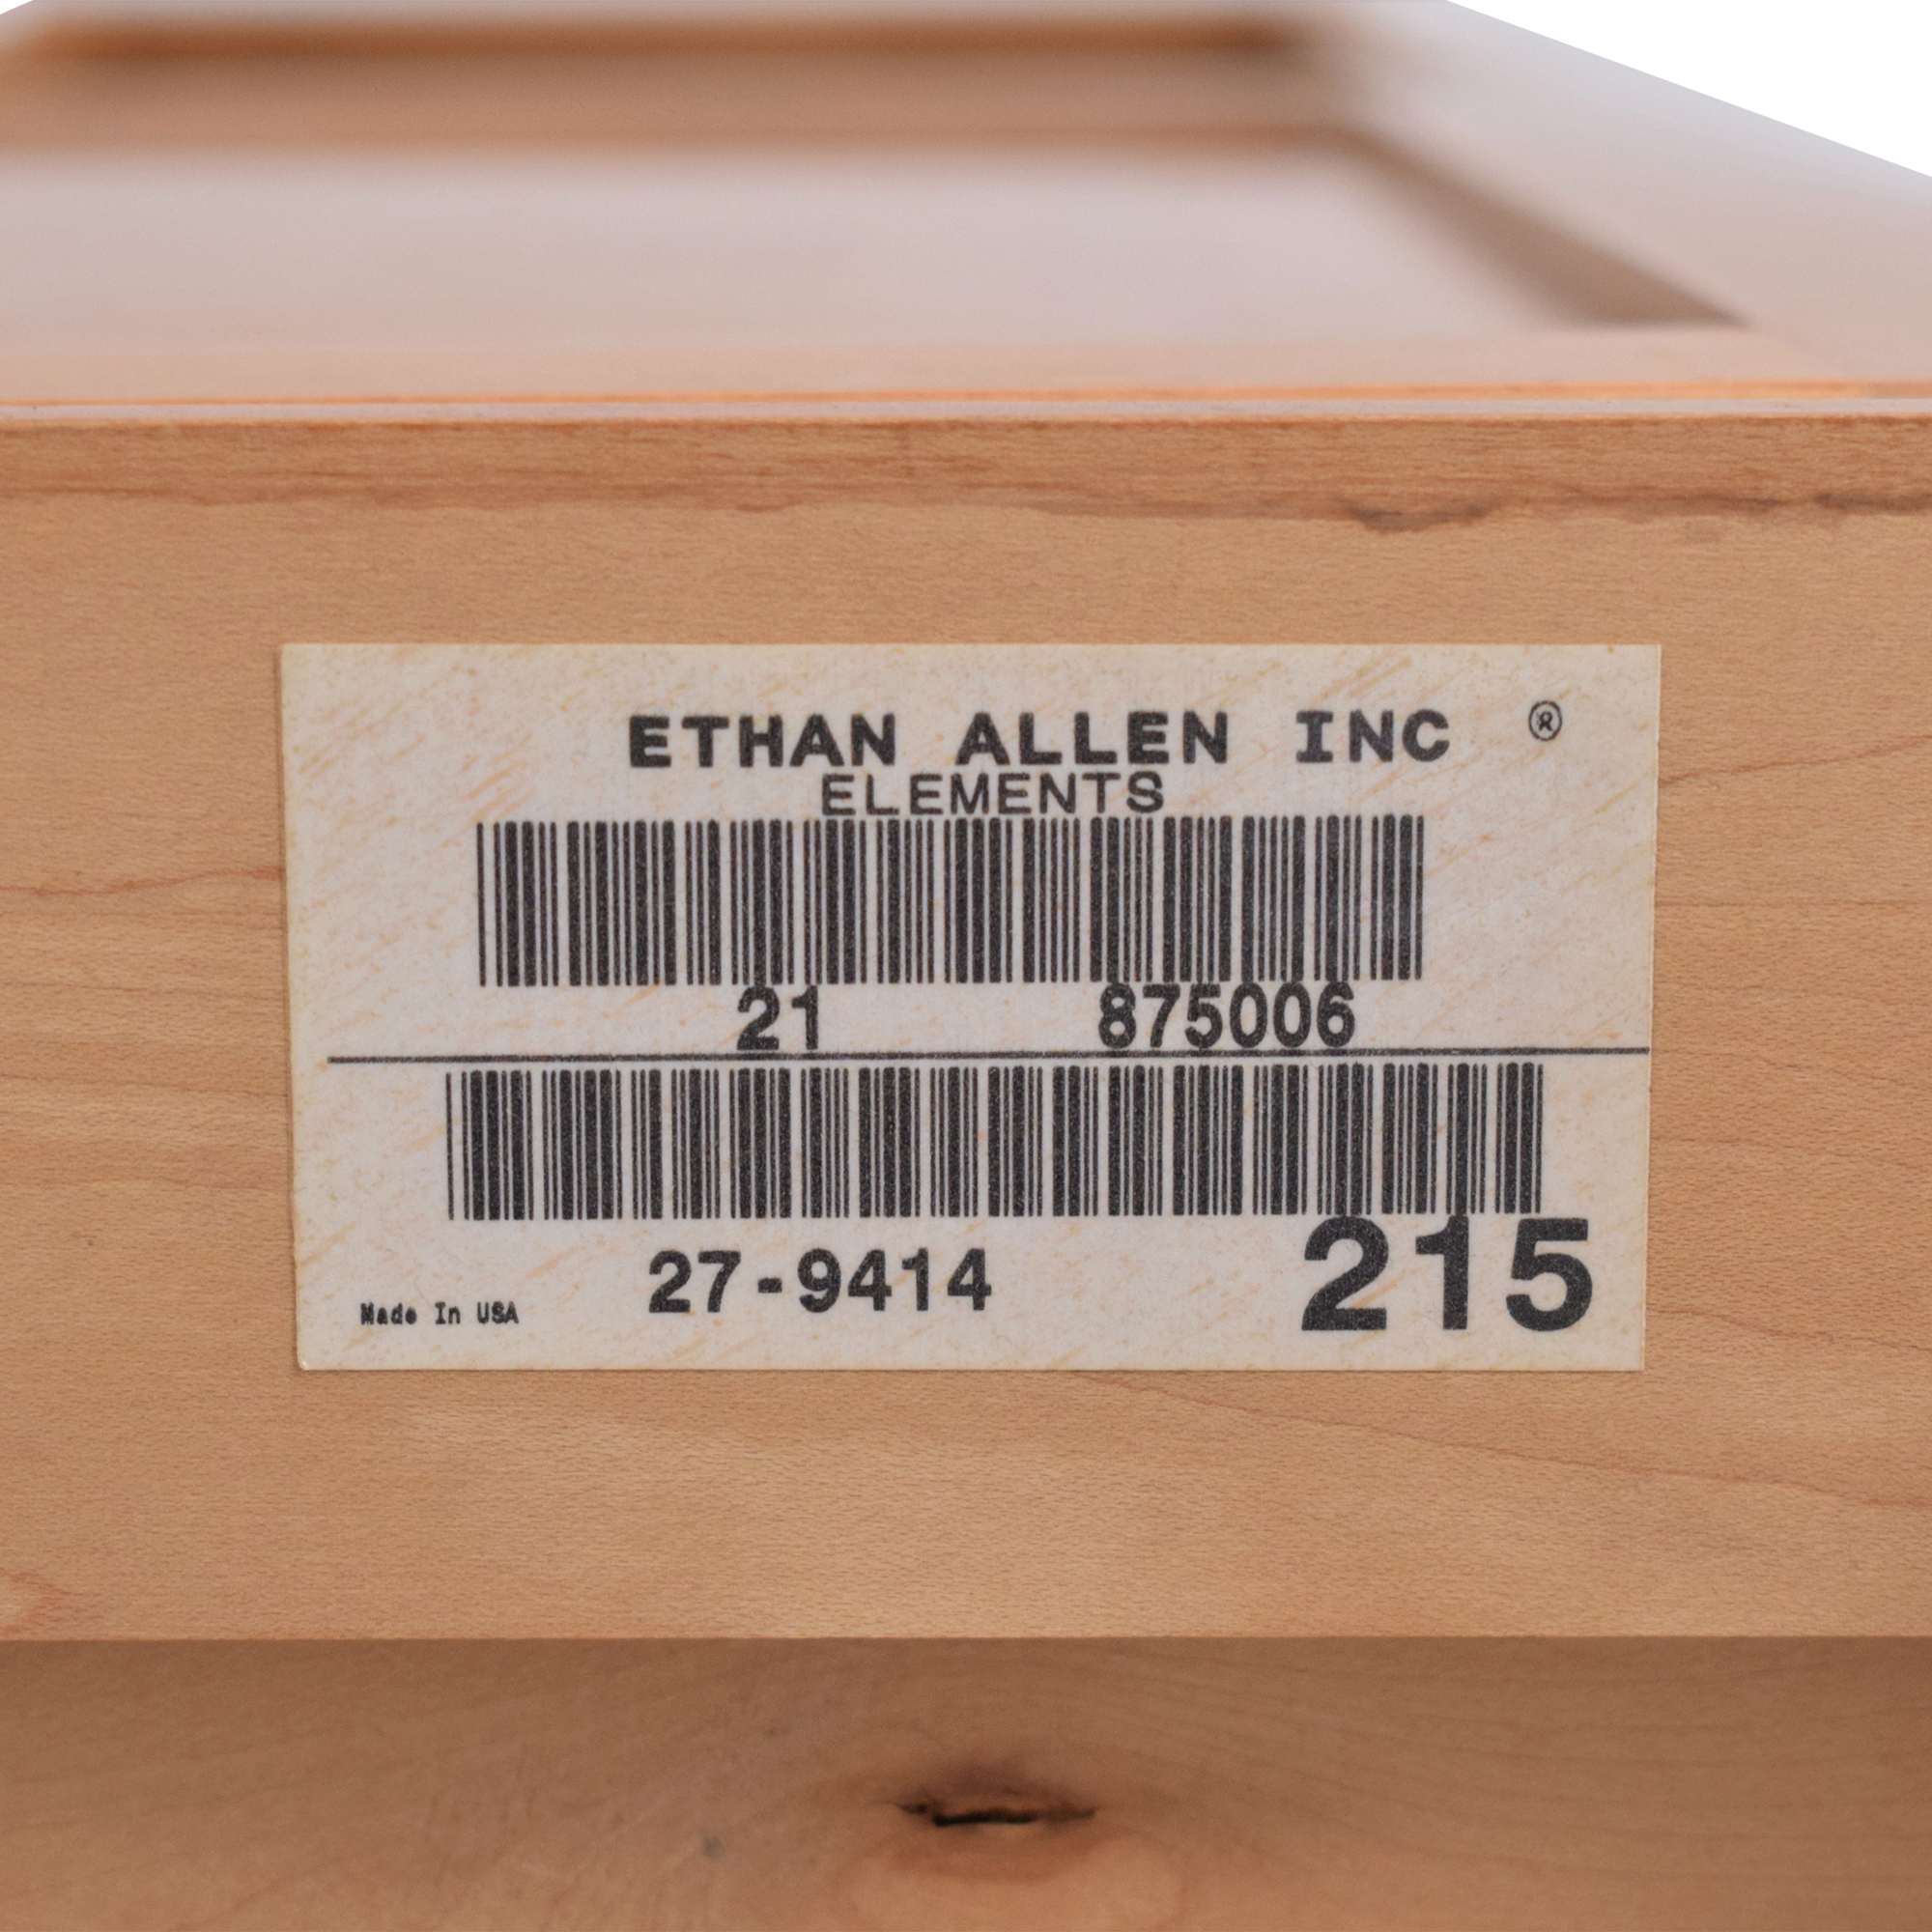 Ethan Allen Ethan Allen Elements Bookcase price